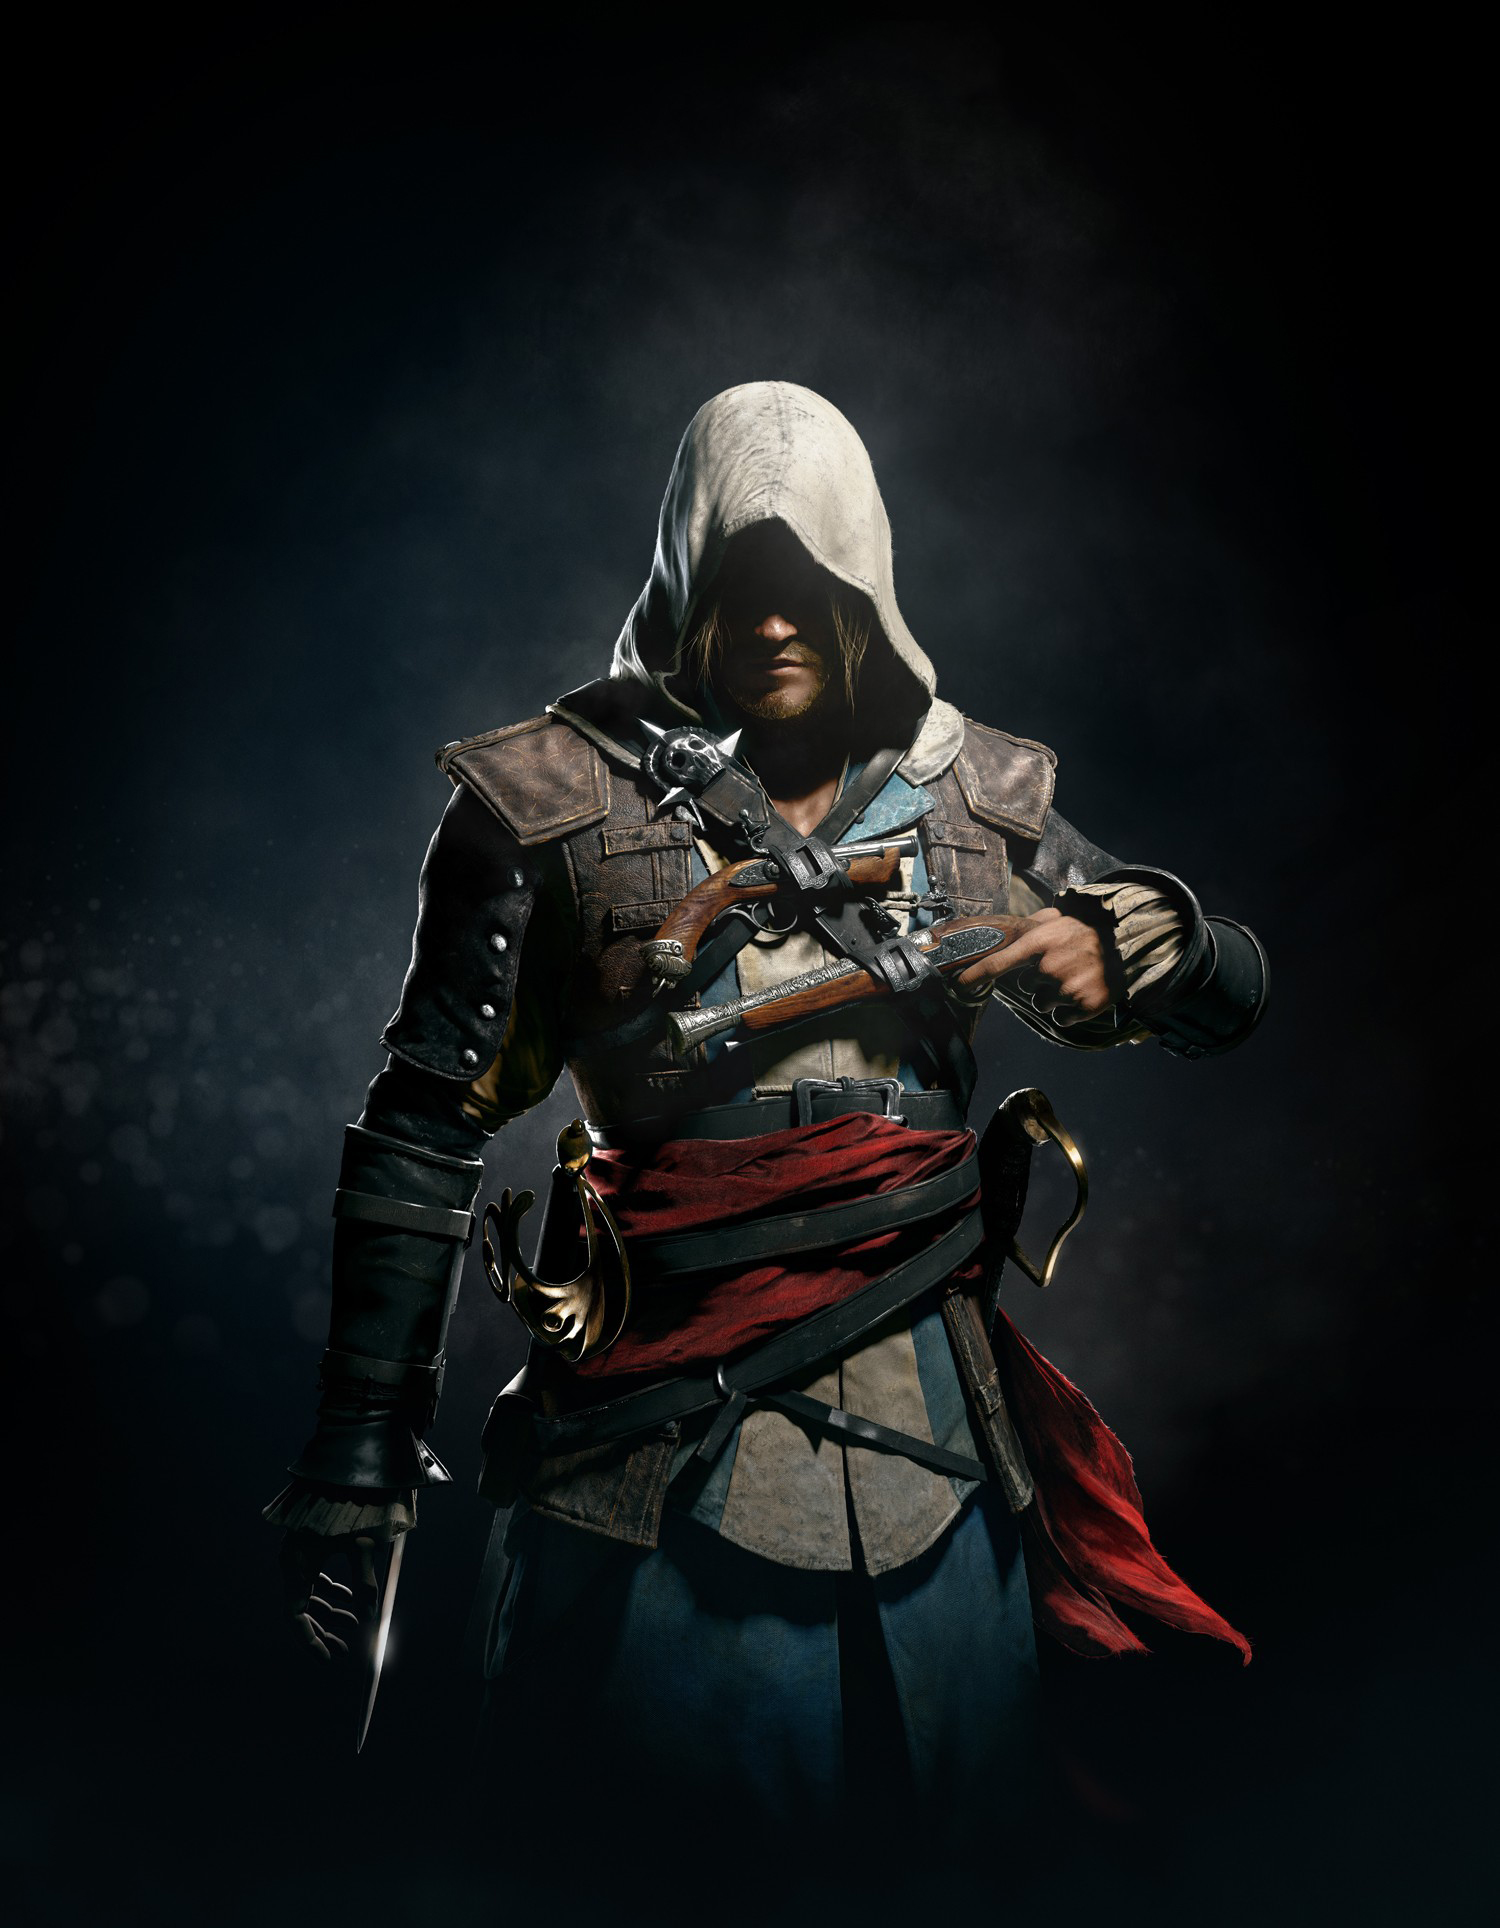 Assassins Creed IV Black Flag Official Images + Trailers pic 4